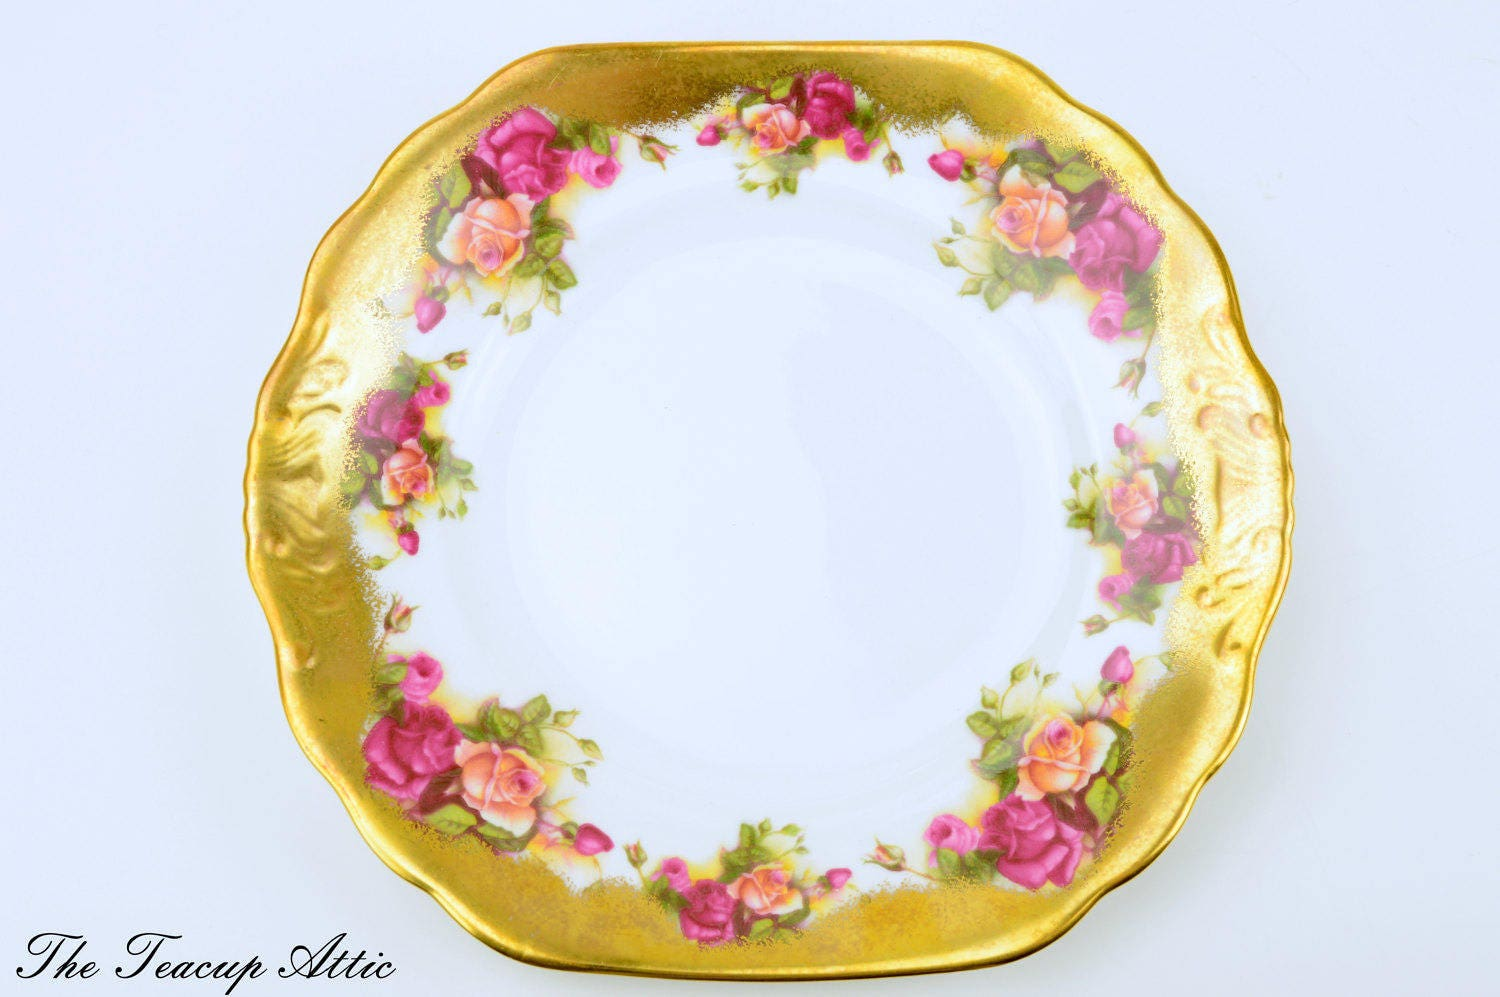 Stunning Vintage Royal Chelsea Golden Rose Cake Plate, English Bone China Cookie Plate, ca. 1940-1950